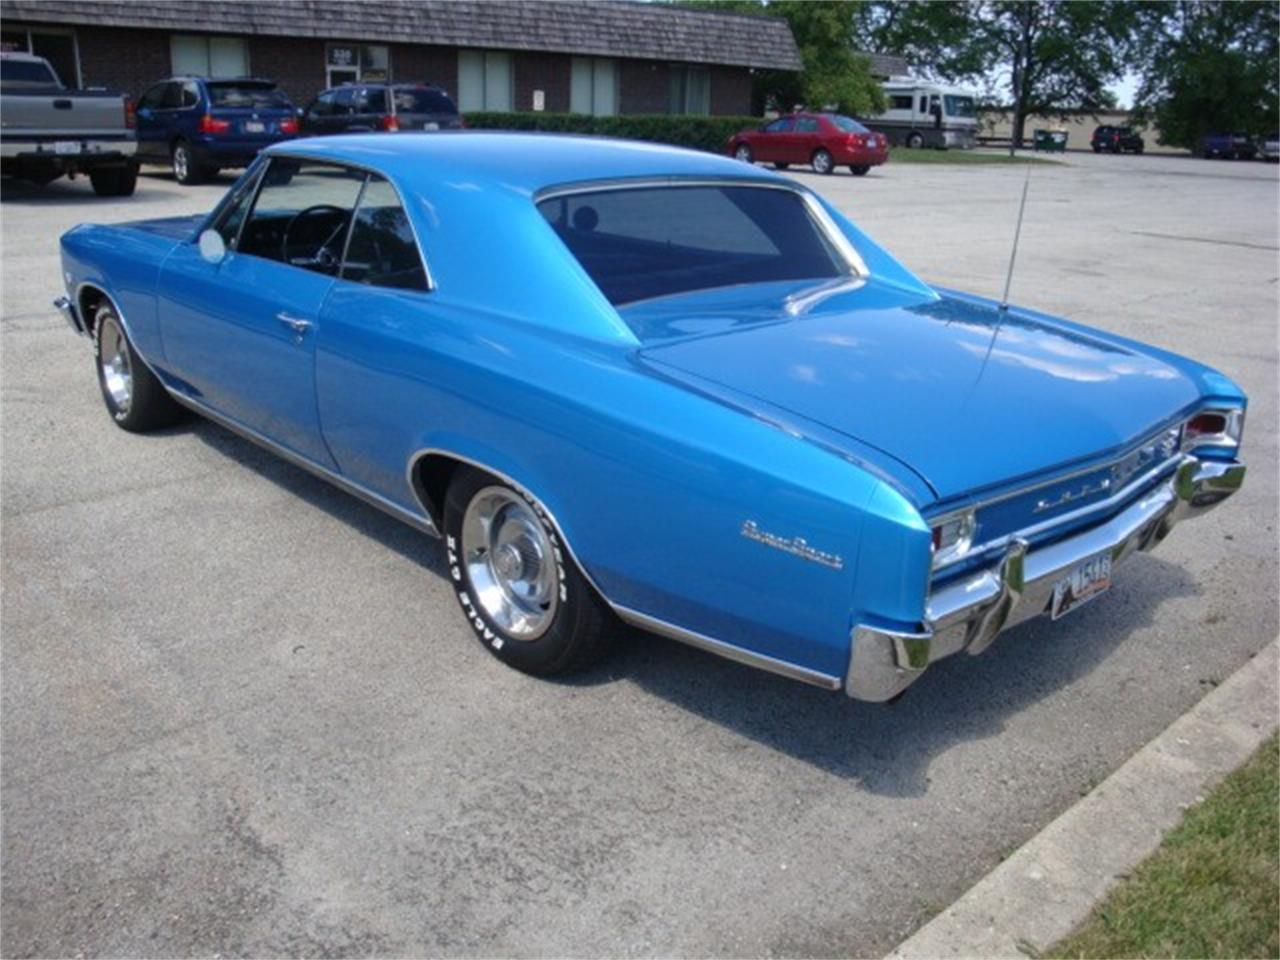 Large Picture of 1966 Chevrolet Chevelle located in lake zurich Illinois - $49,900.00 Offered by Midwest Muscle Cars - L8N9